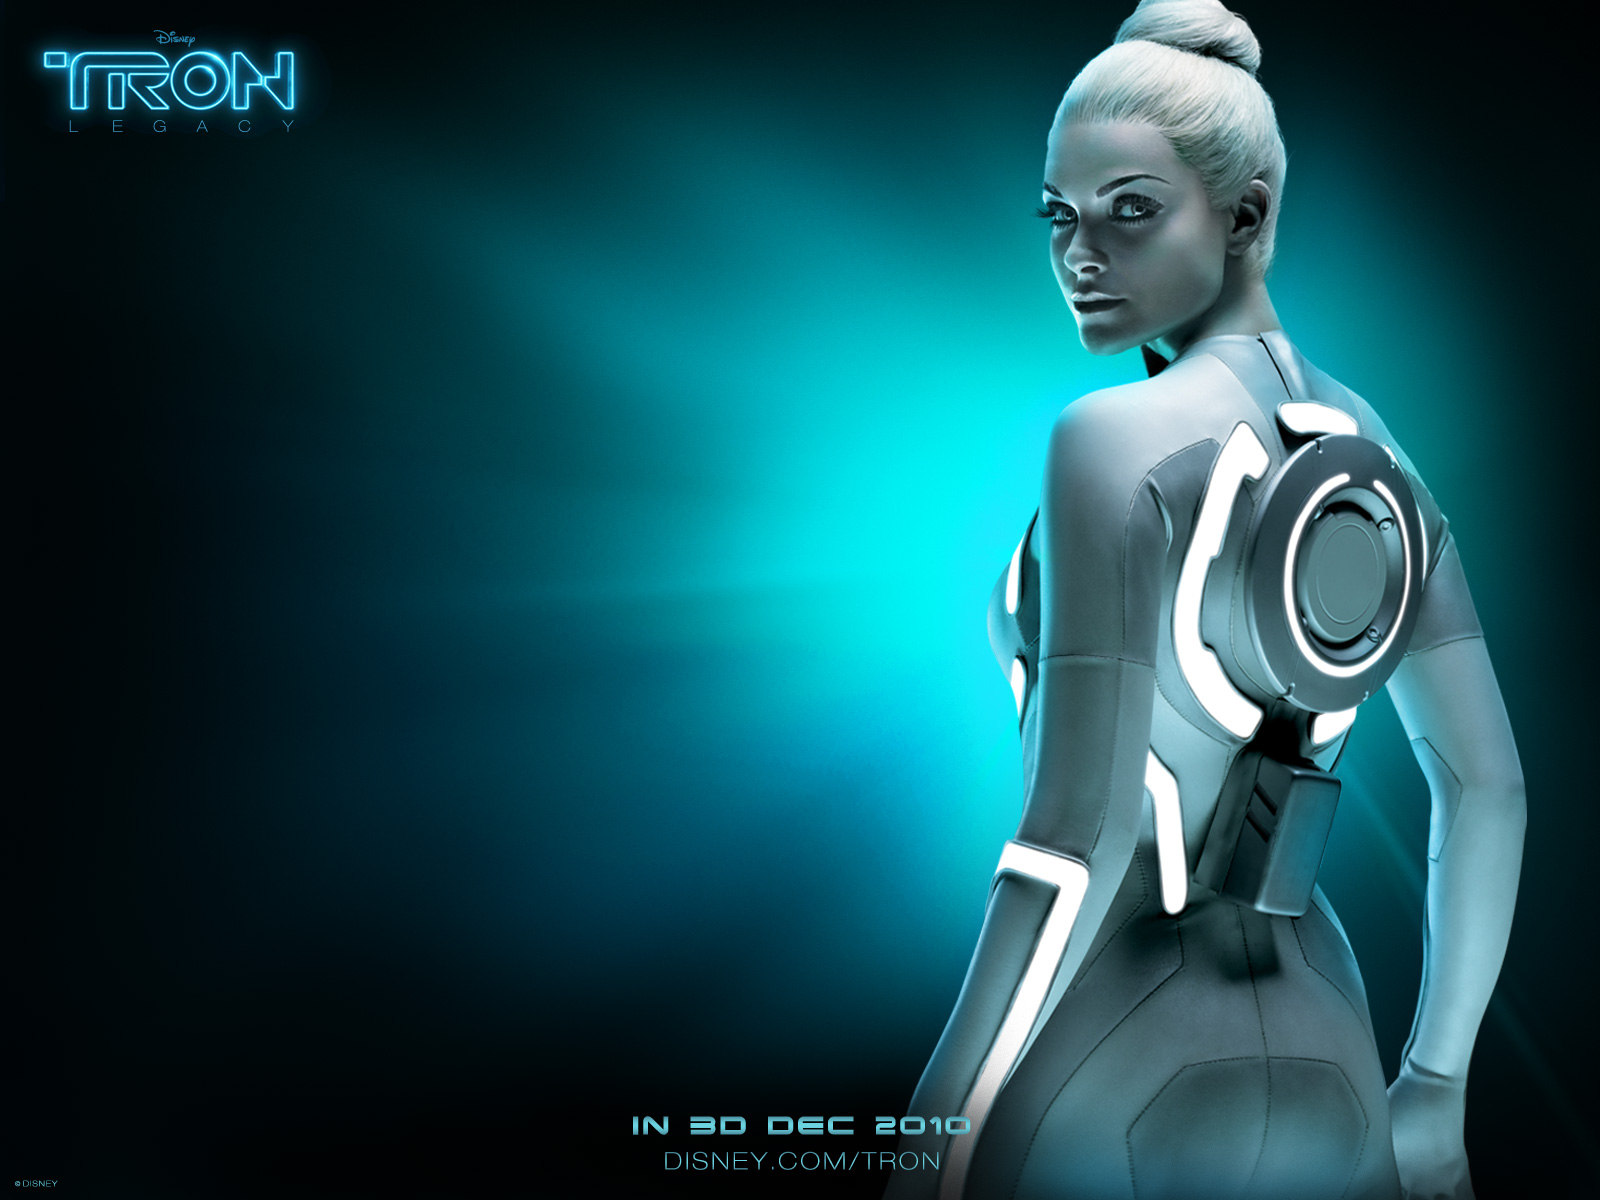 Tron Legacy Characters HD Wallpaper Posters Wallpapers